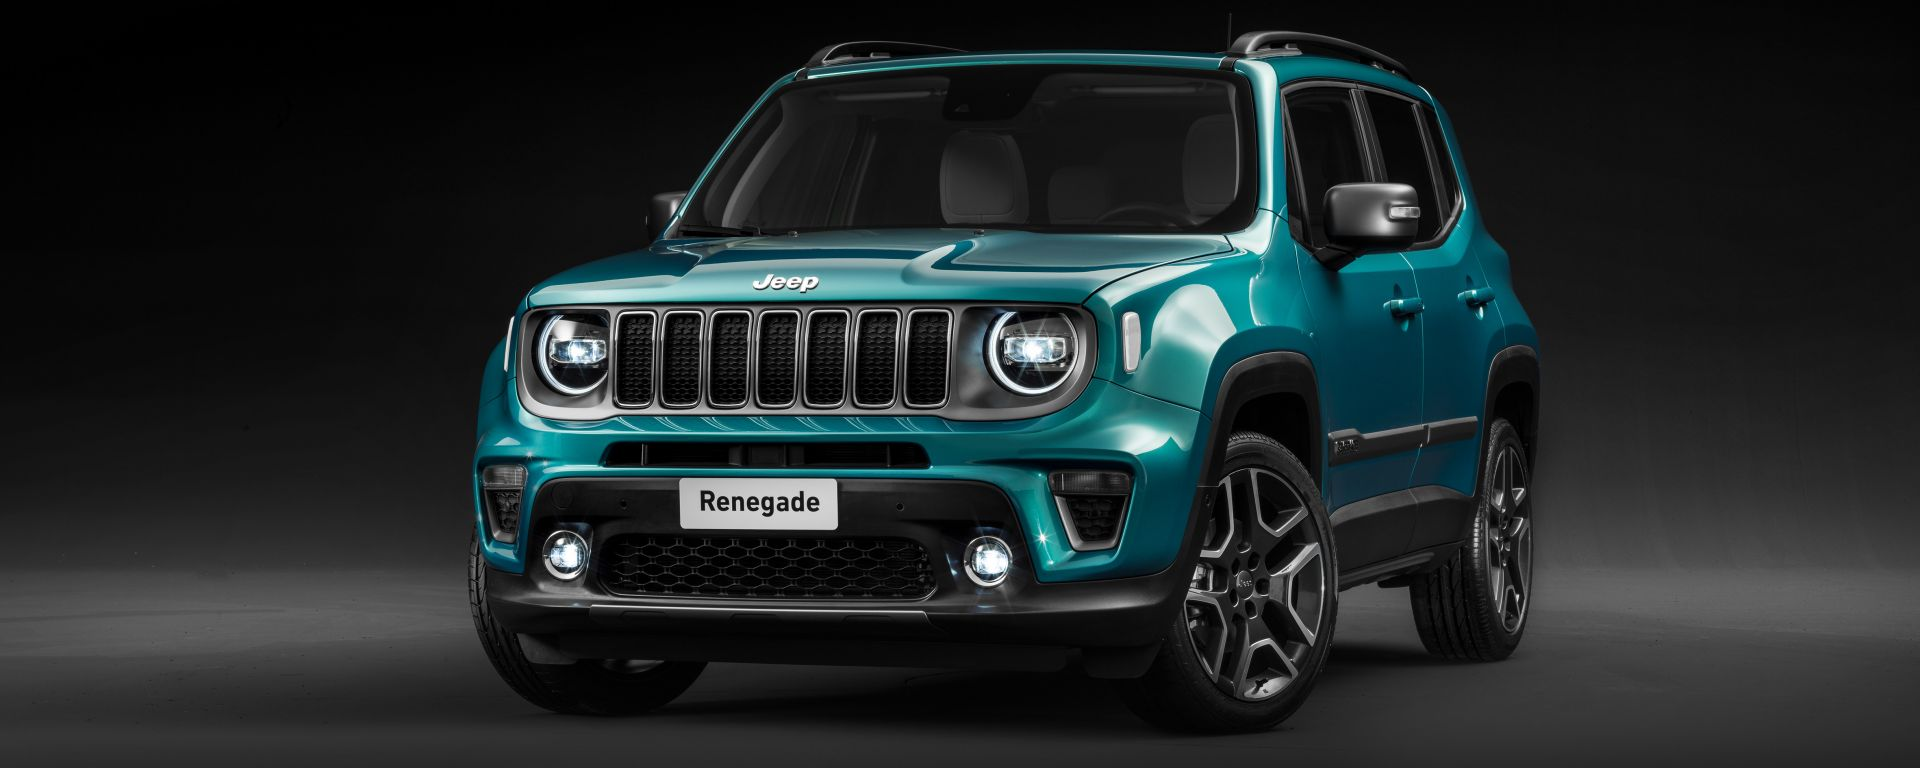 Anvil Renegade Colore Piu Bello Anvil Jeep Renegade Colori